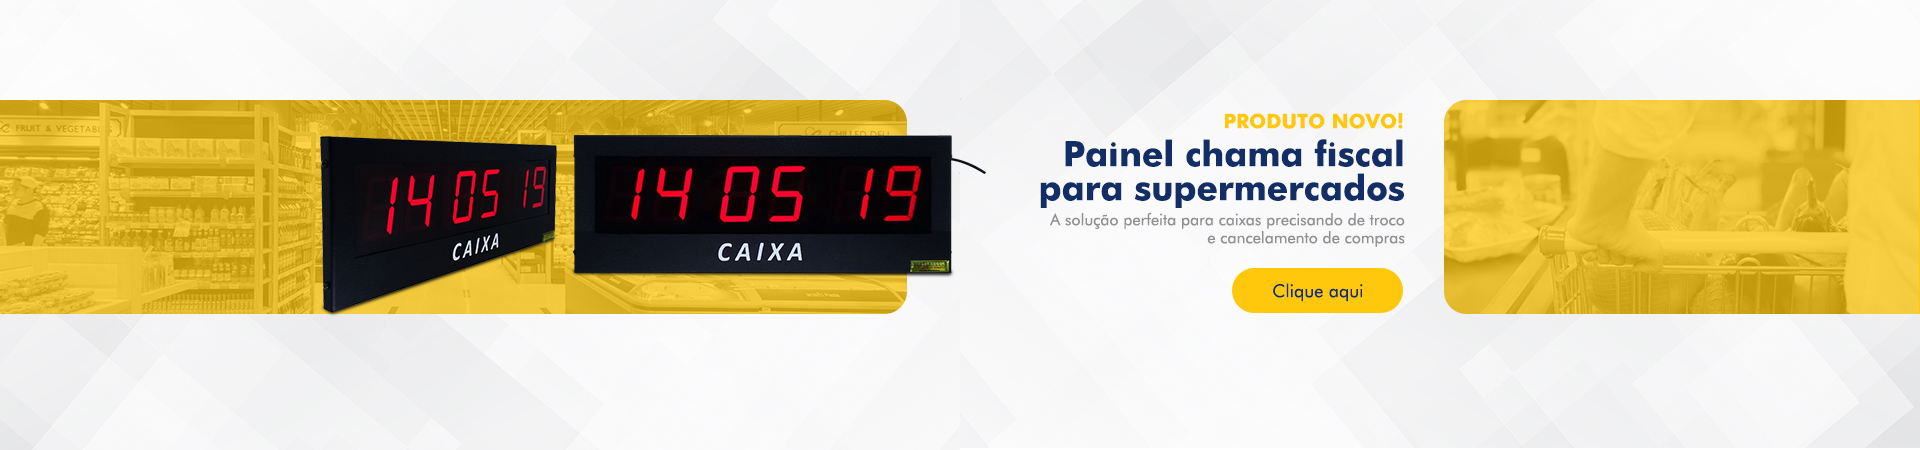 Painel Chama Fiscal